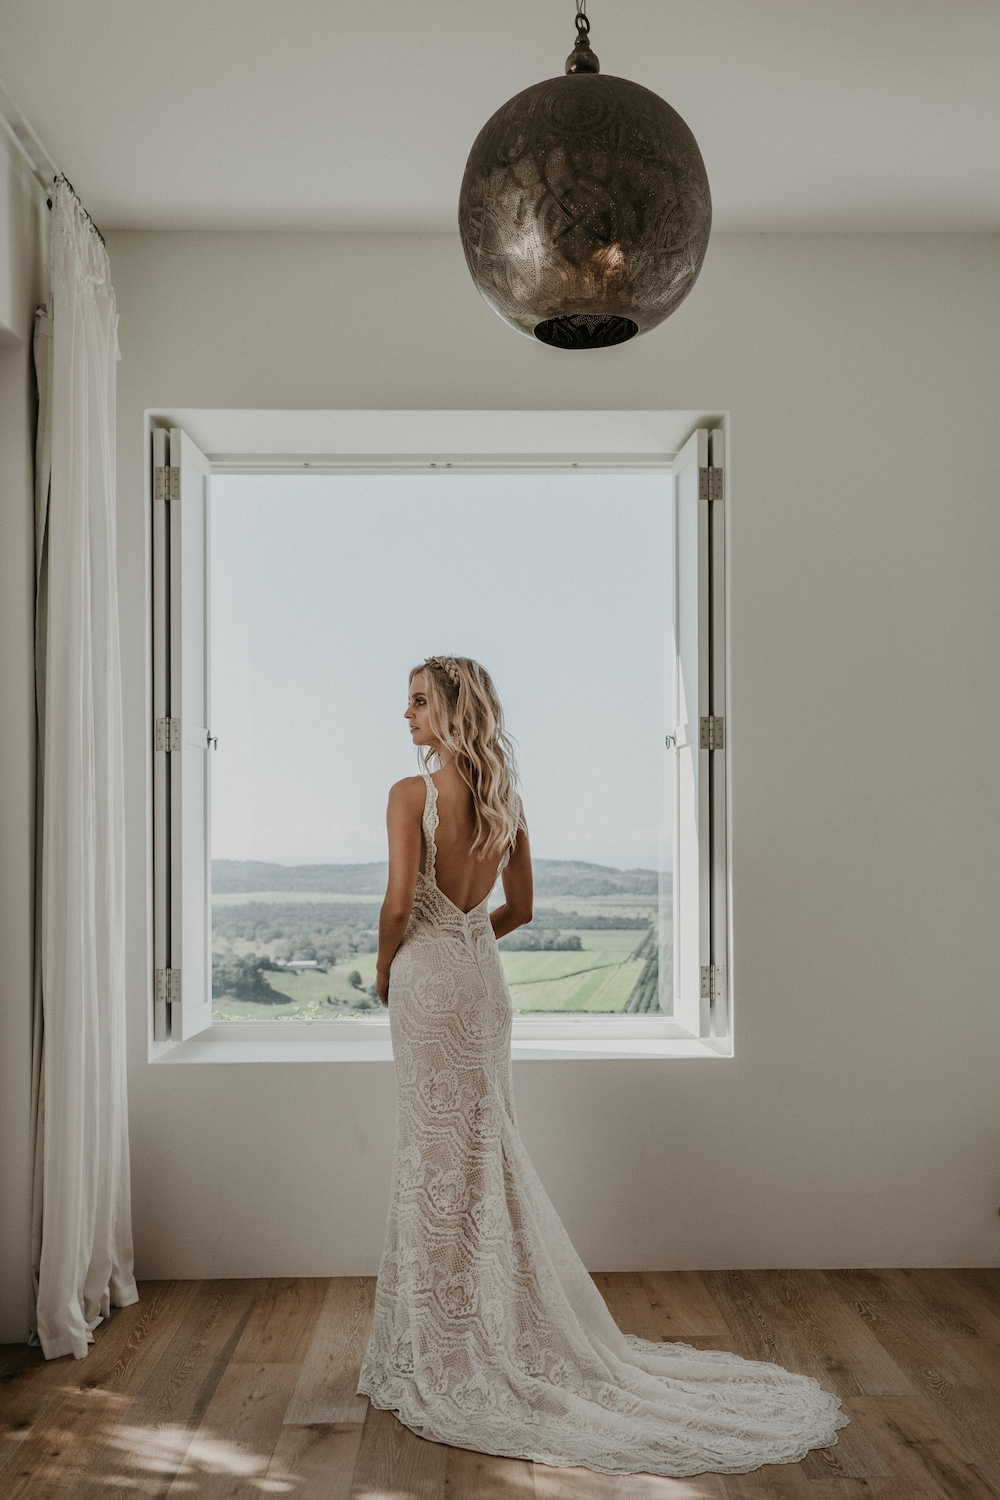 The Olive wedding dress from Jane Hill Bridal | View on LOVE FIND CO.